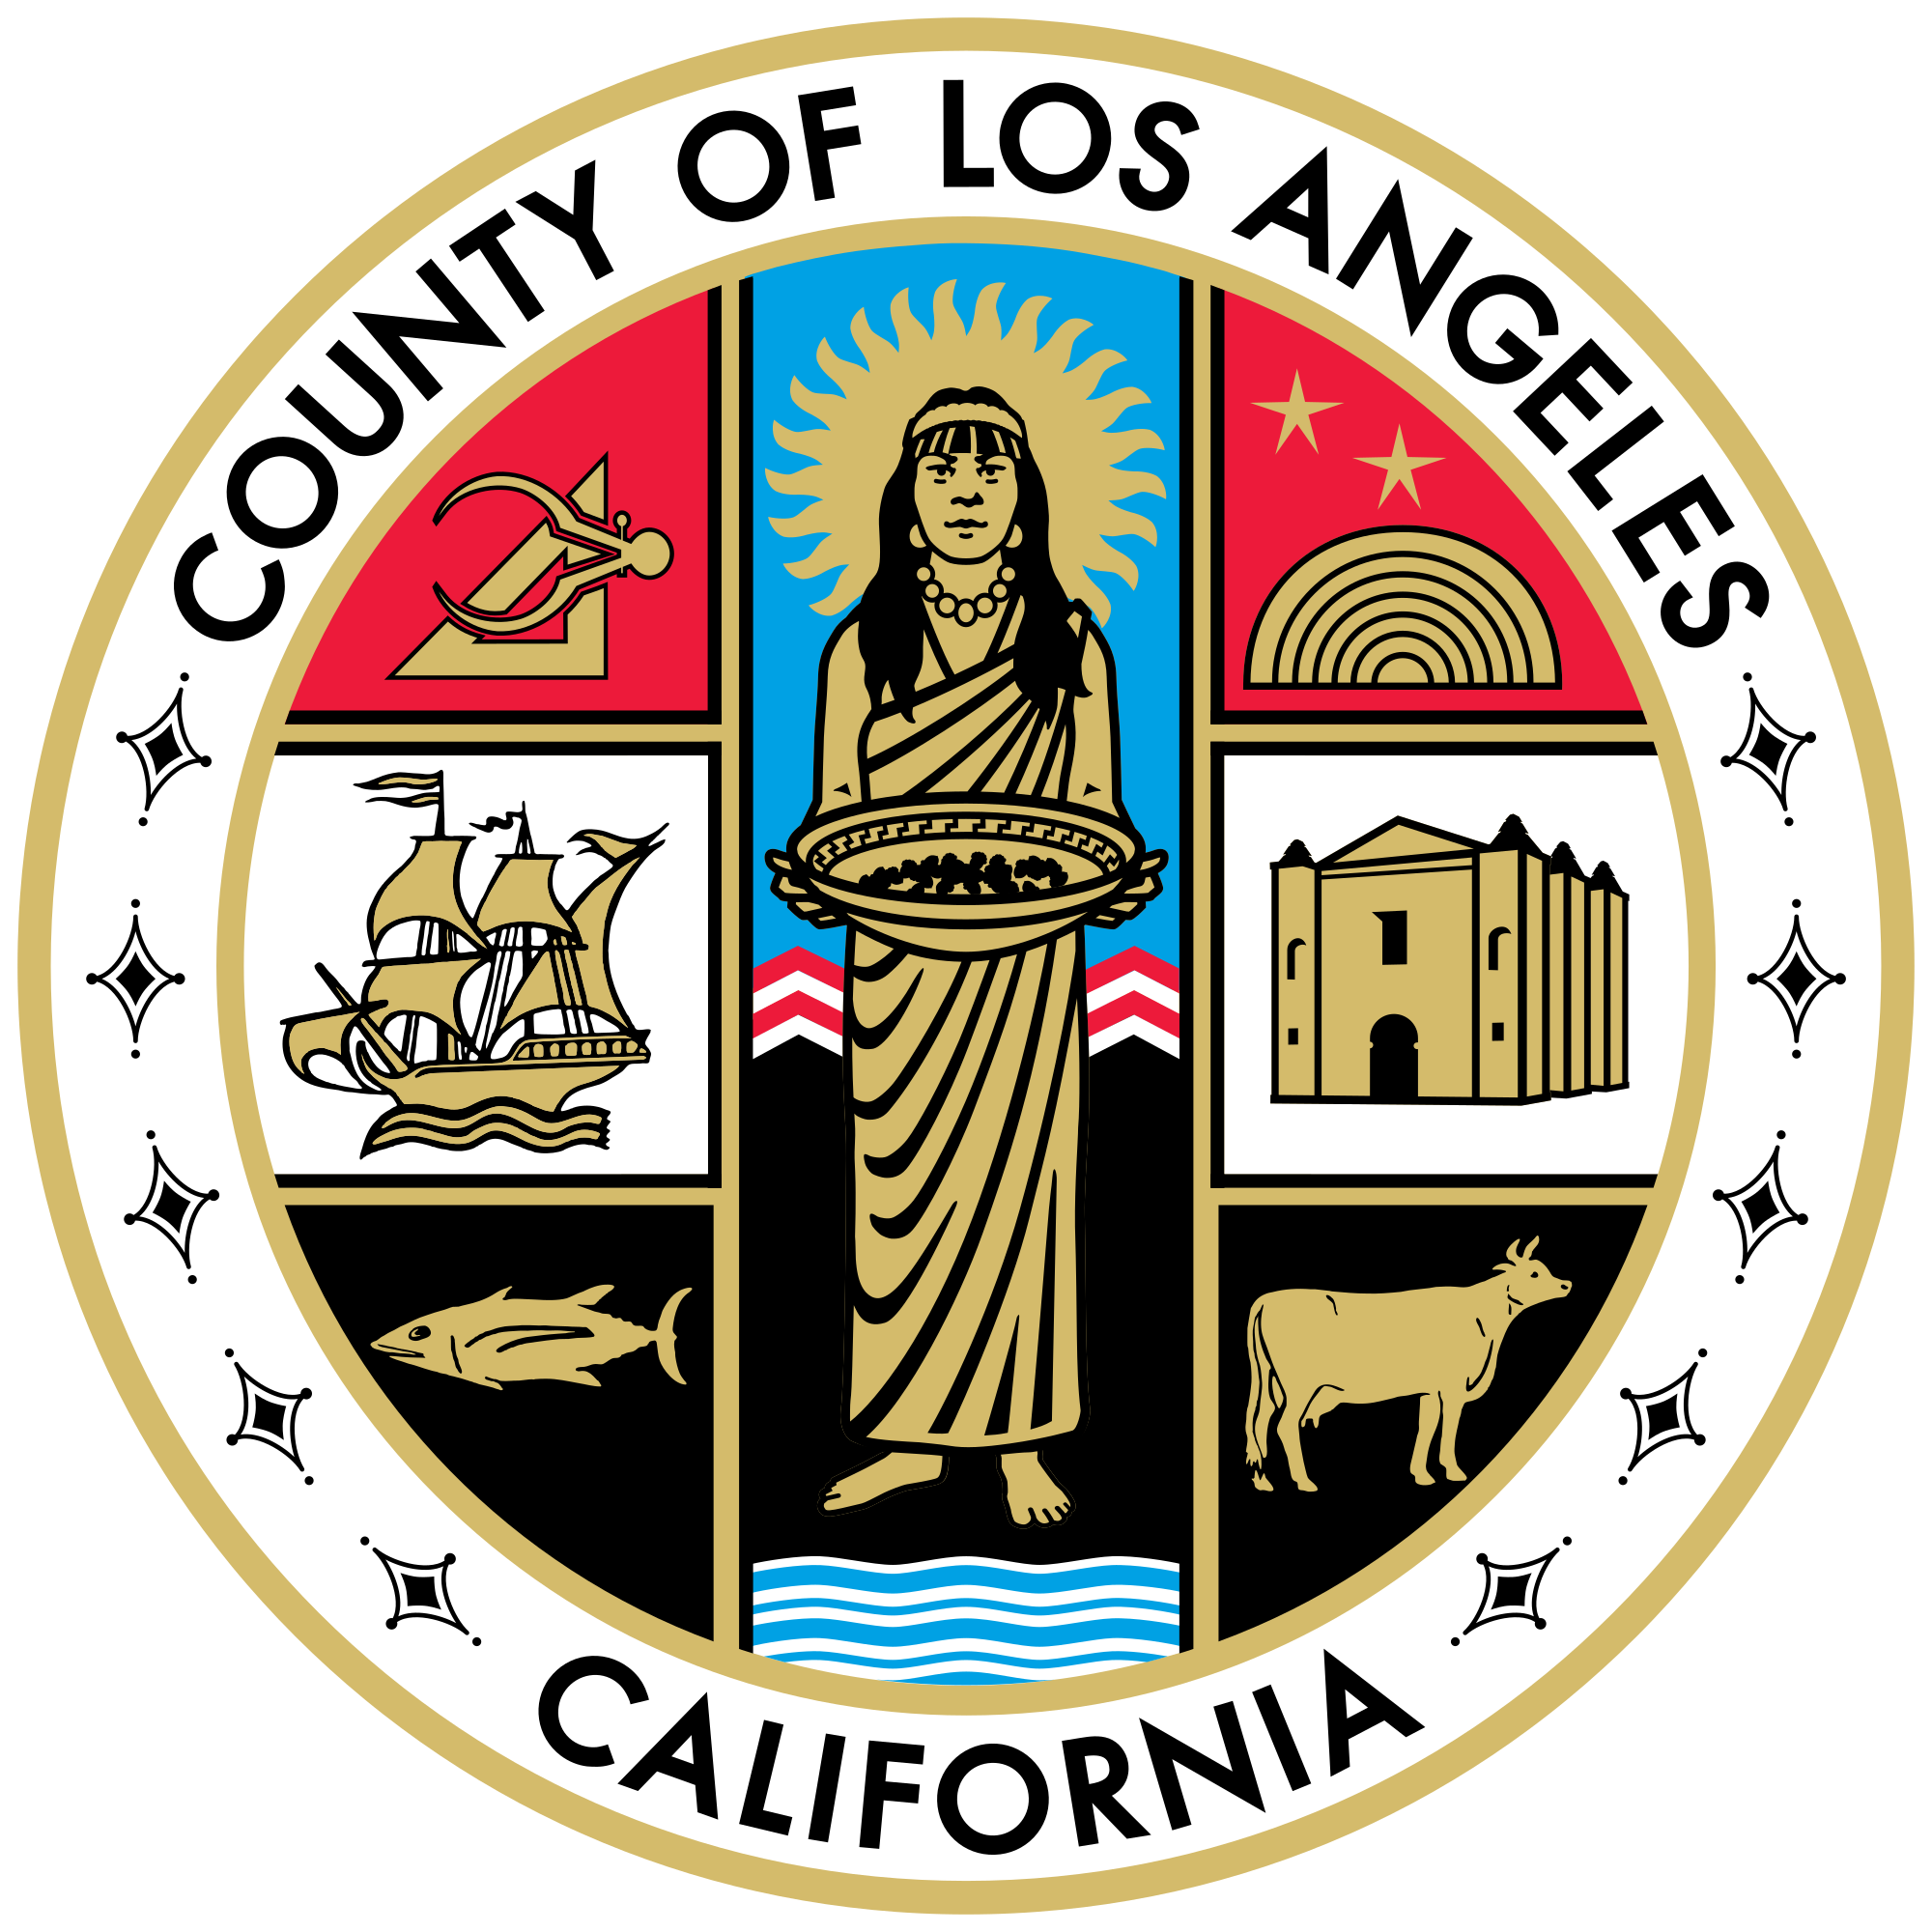 California svg state graphic. File seal of los